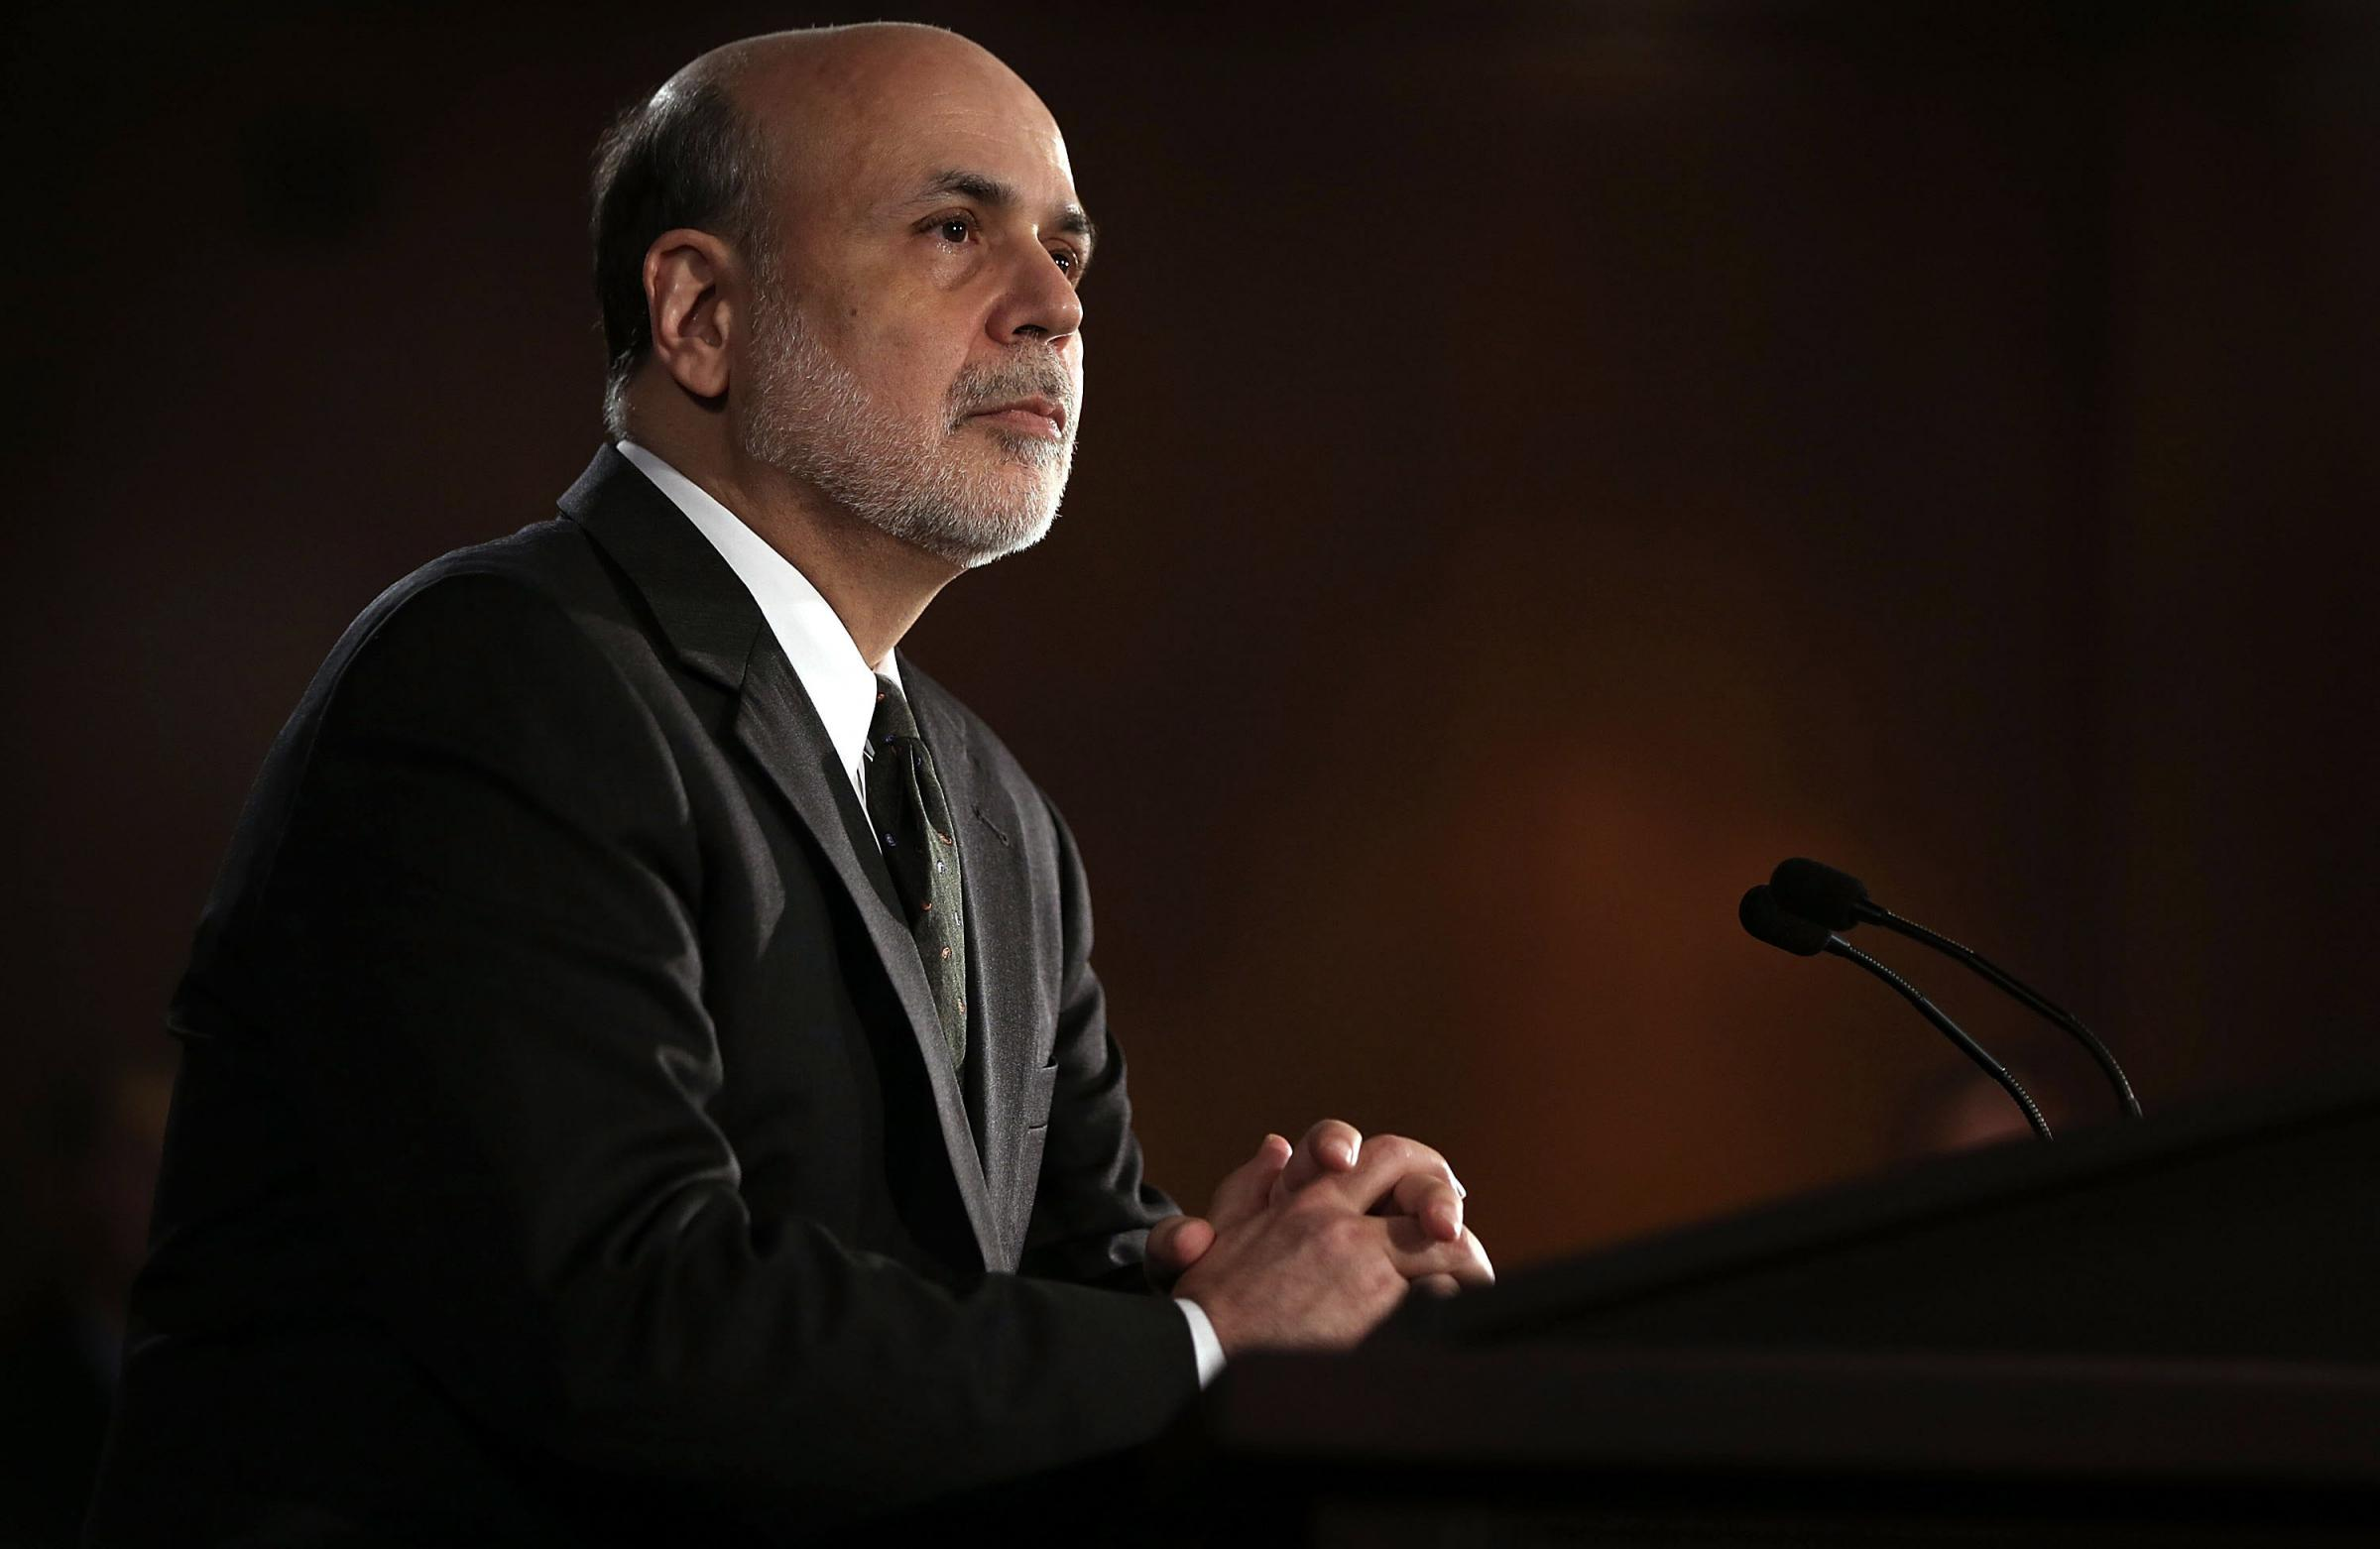 """is fed chairman bernanke doing a """"there is some concern there,"""" said former fed chairman bernanke, who is now a distinguished fellow at the brookings institution in washington, though he also noted that regulators are now more attuned to potential systemic risks."""